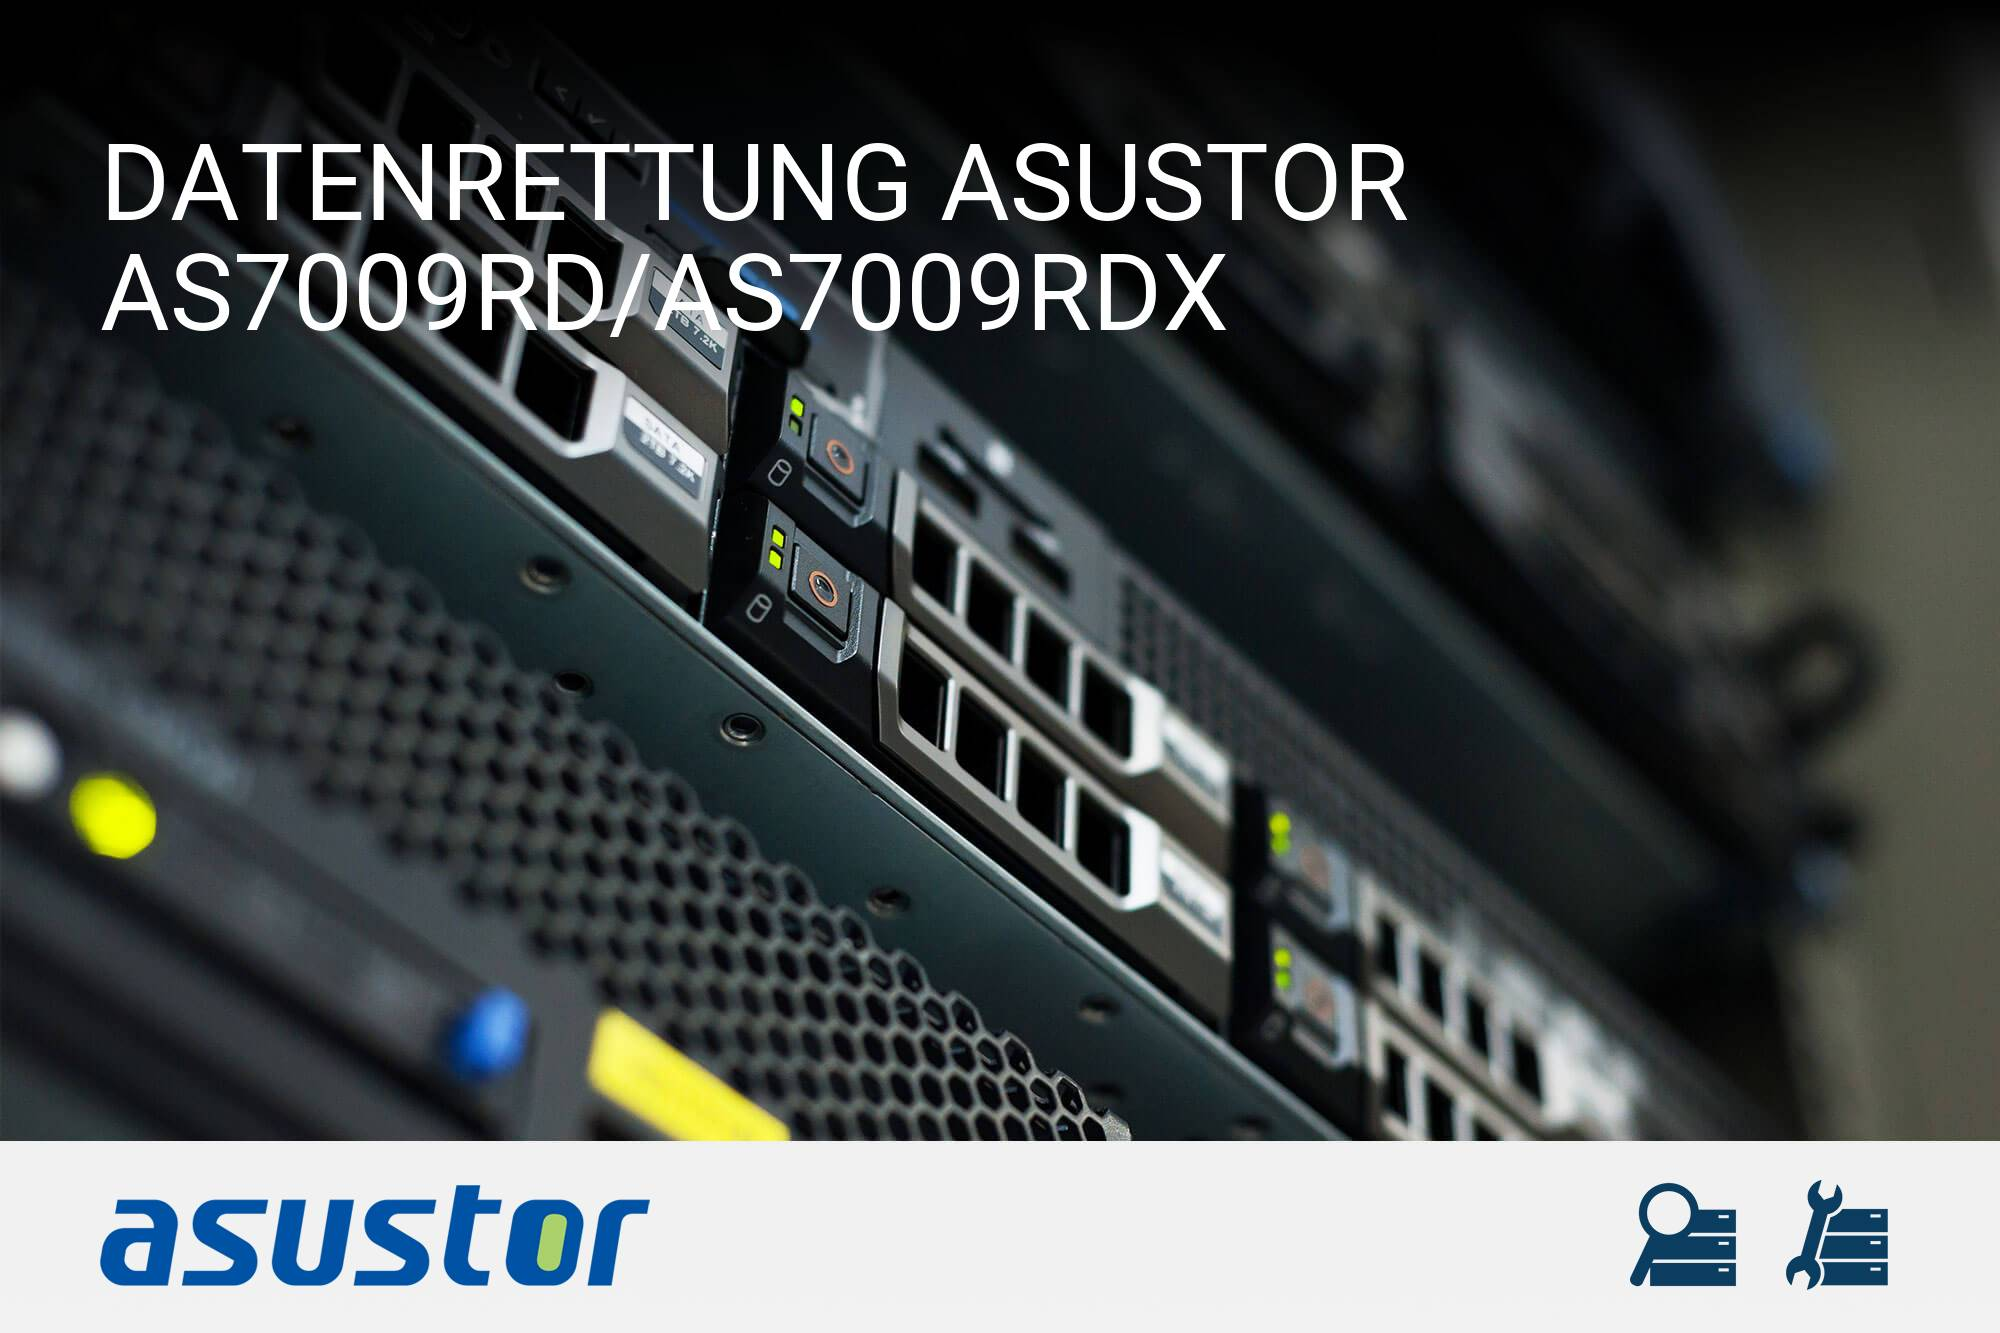 Asustor AS7009RD/AS7009RDX